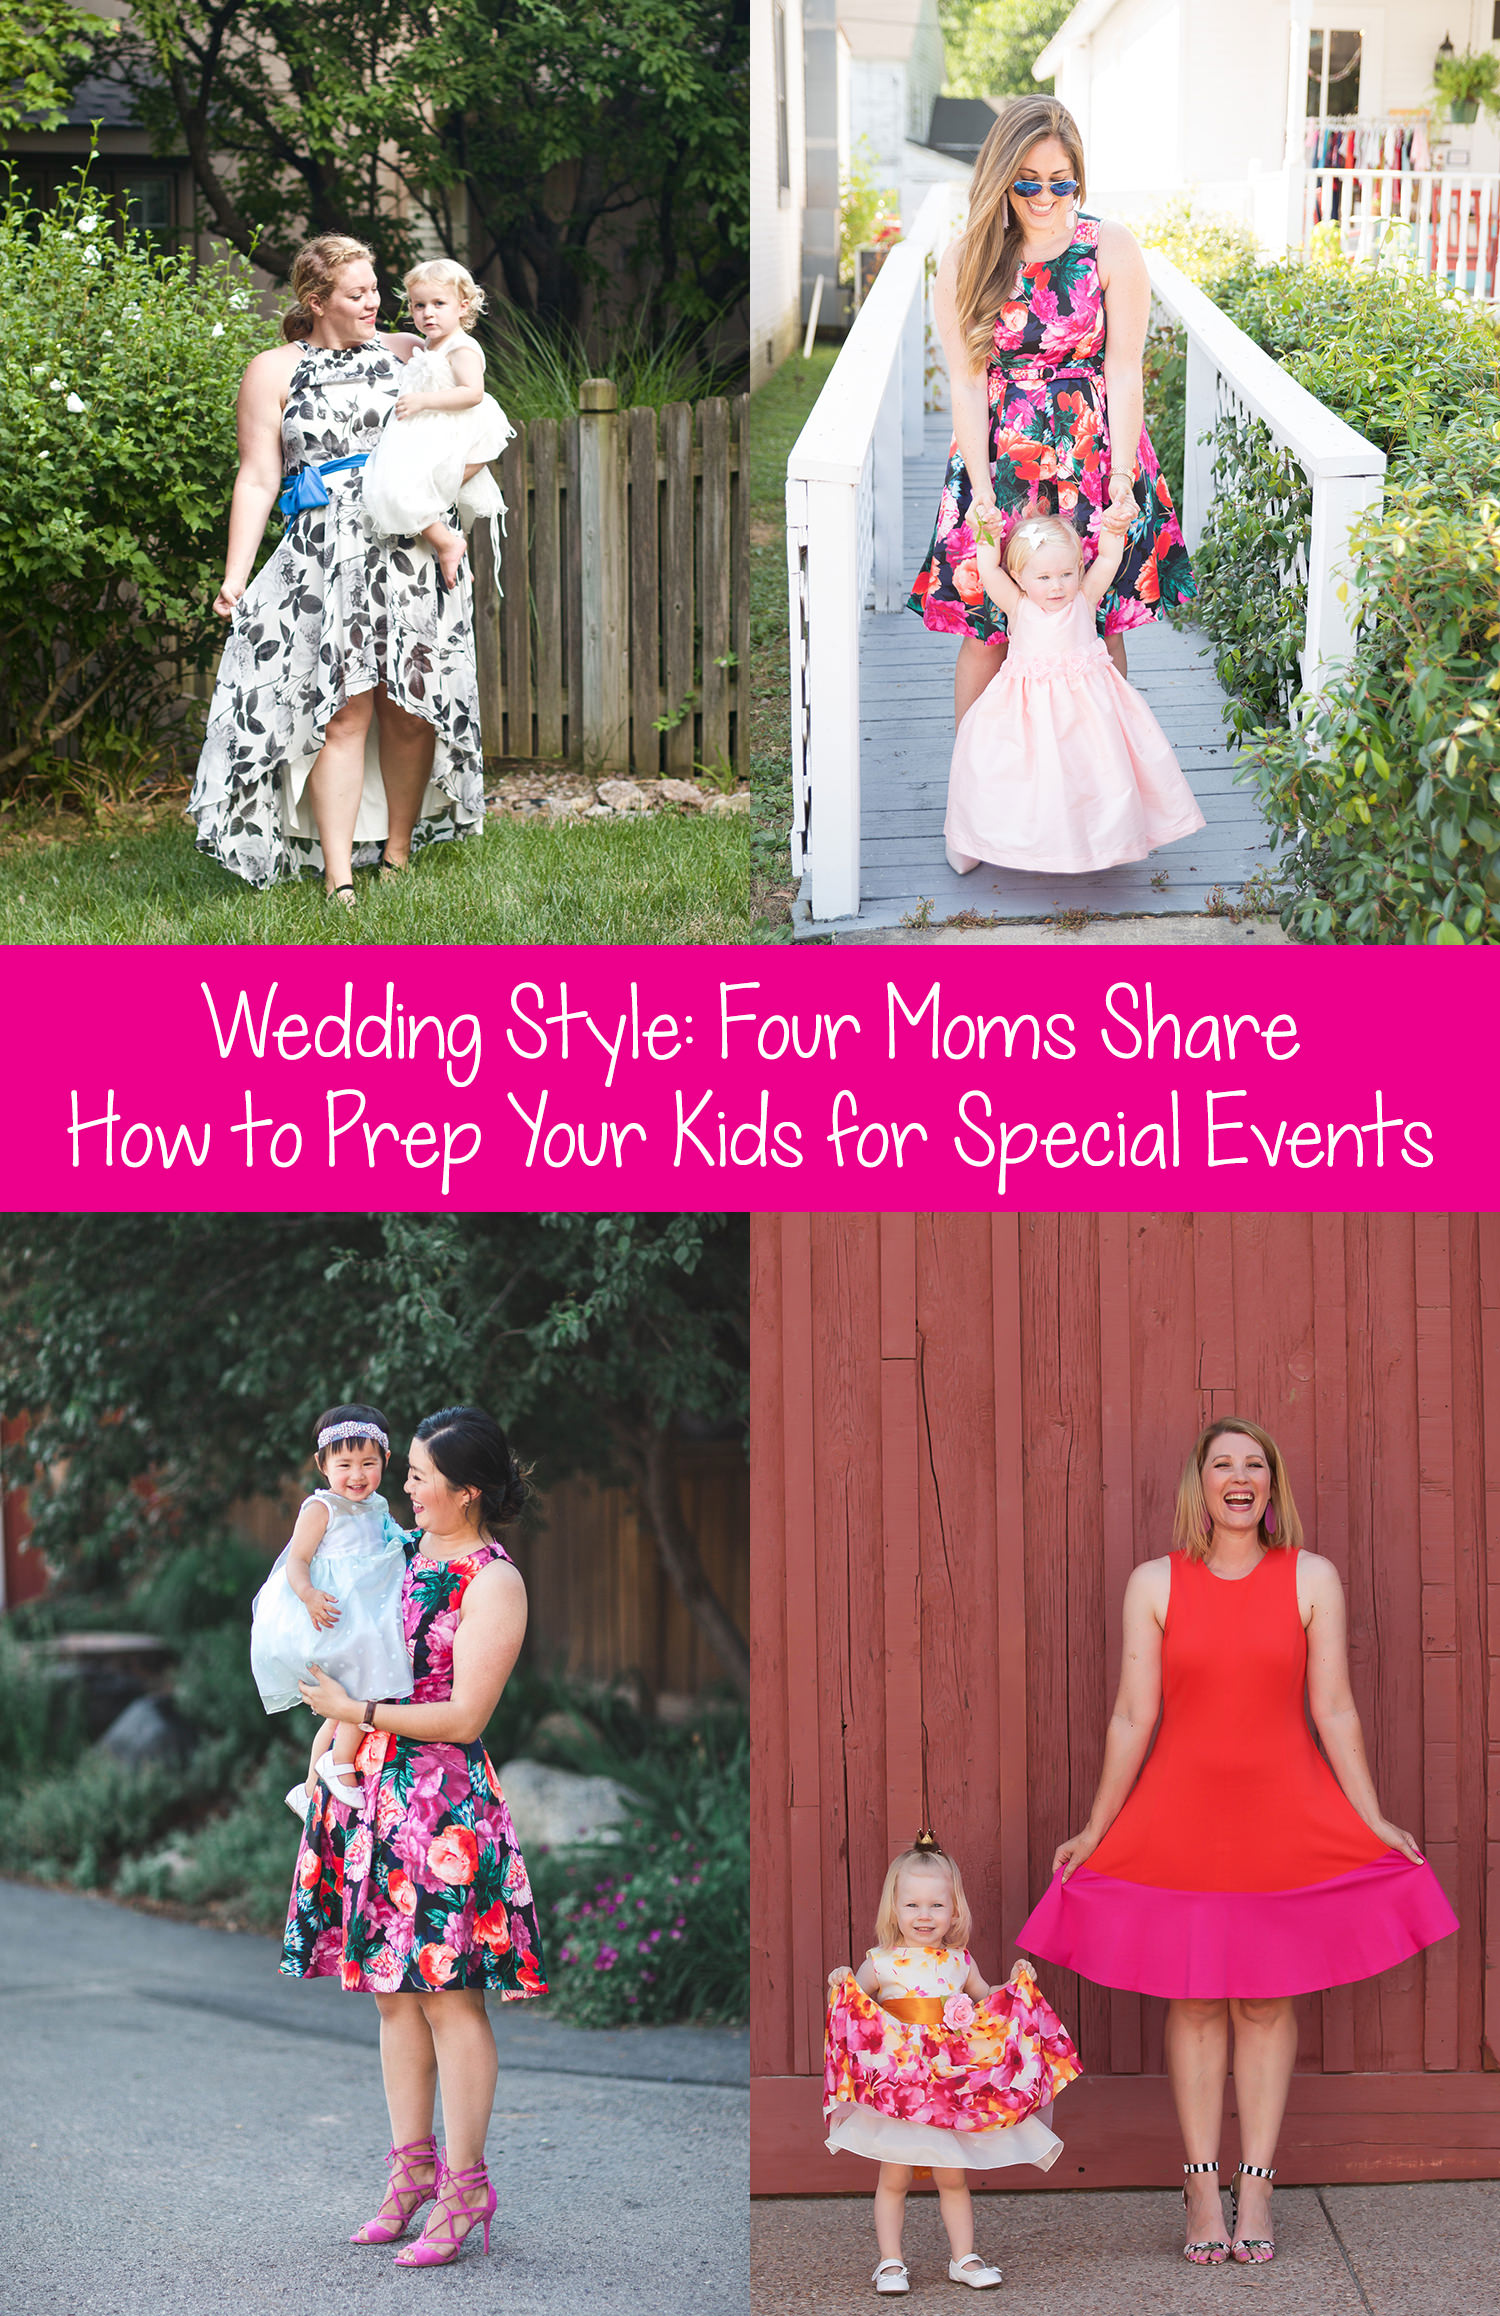 Wondering what to wear to a wedding? And how to prep your kiddos? These tips will help the whole family enjoy weddings in STYLE!